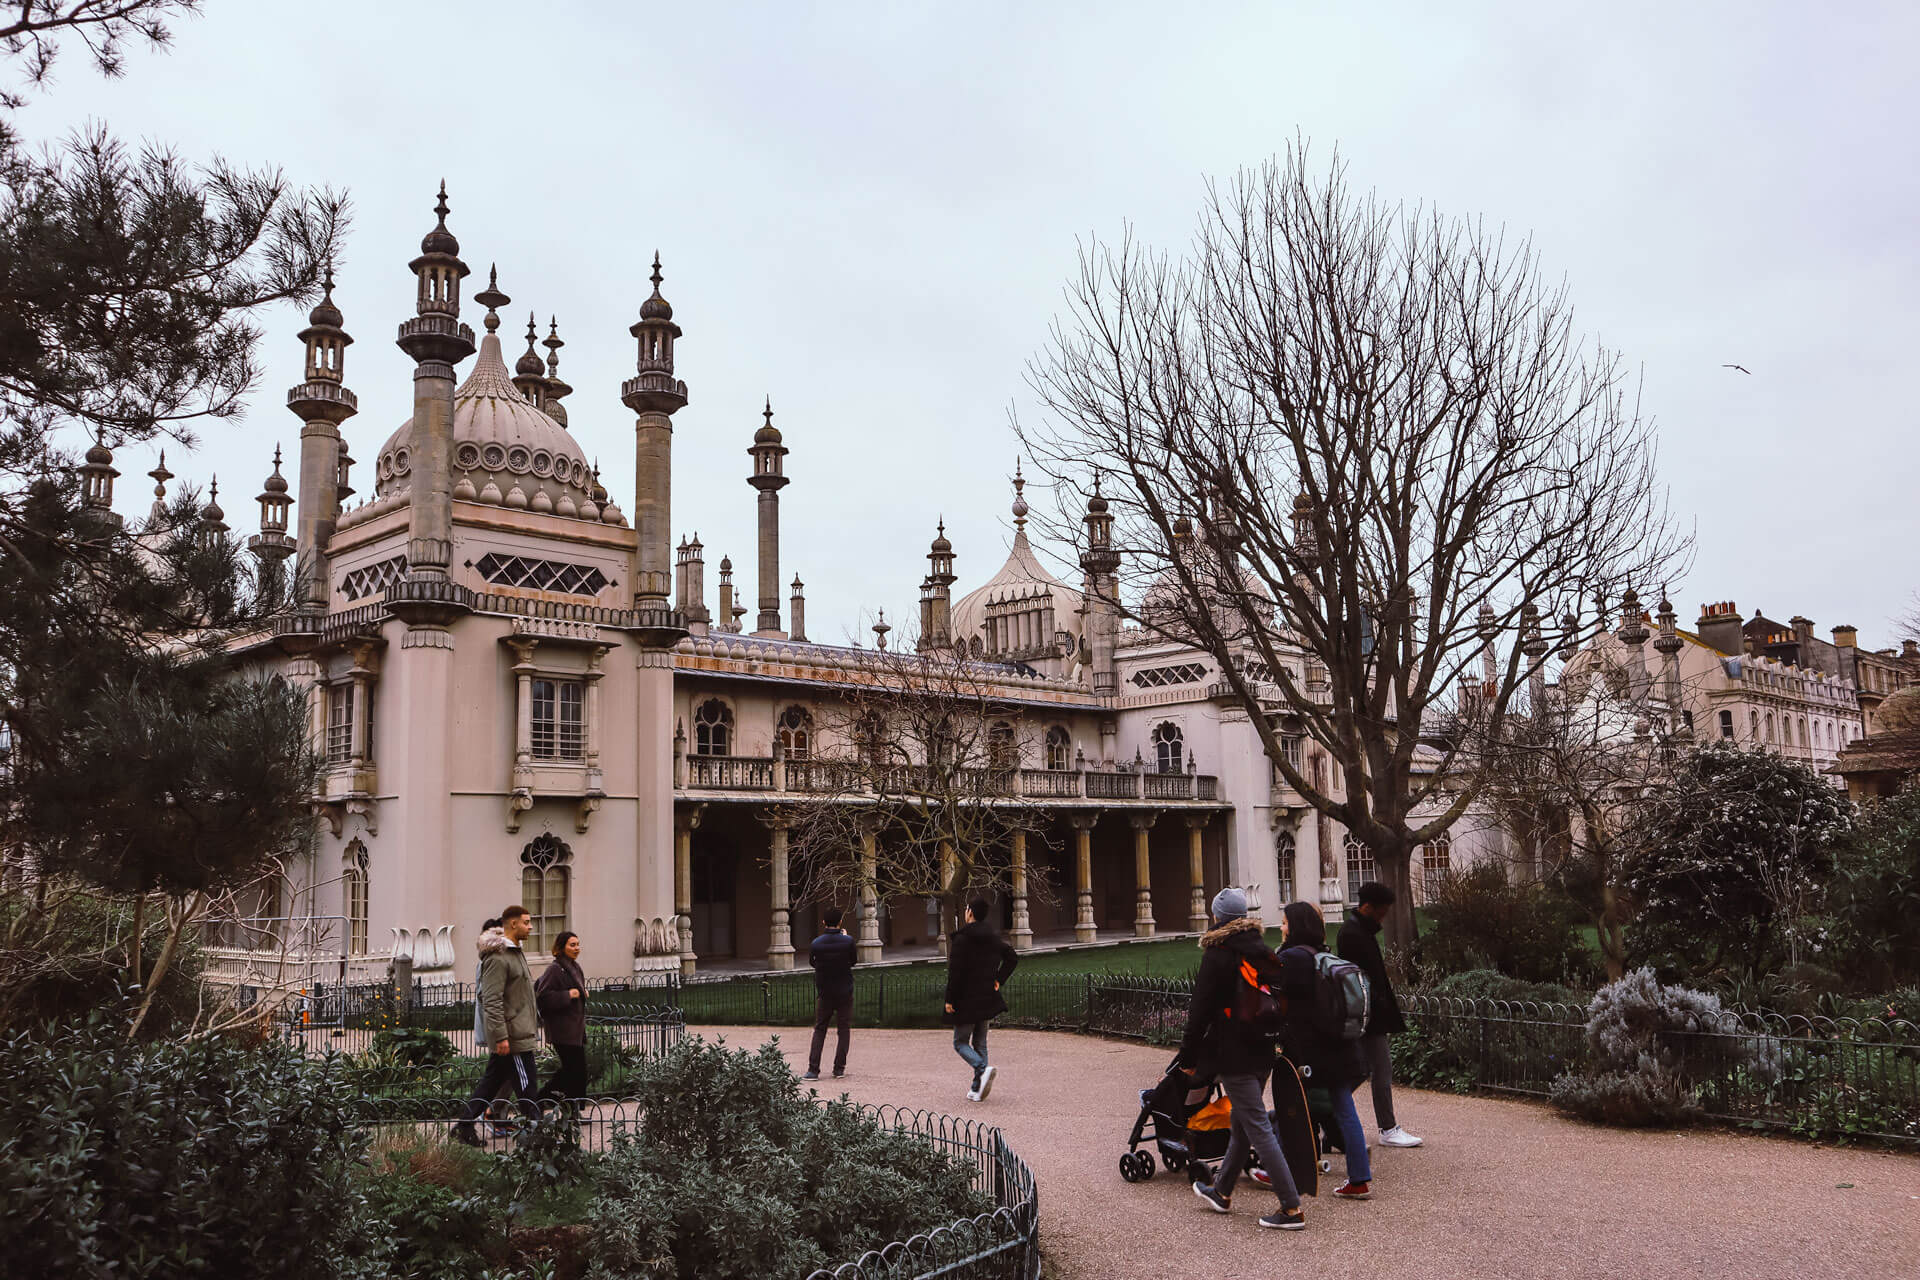 Rpyal Palace in Brighton